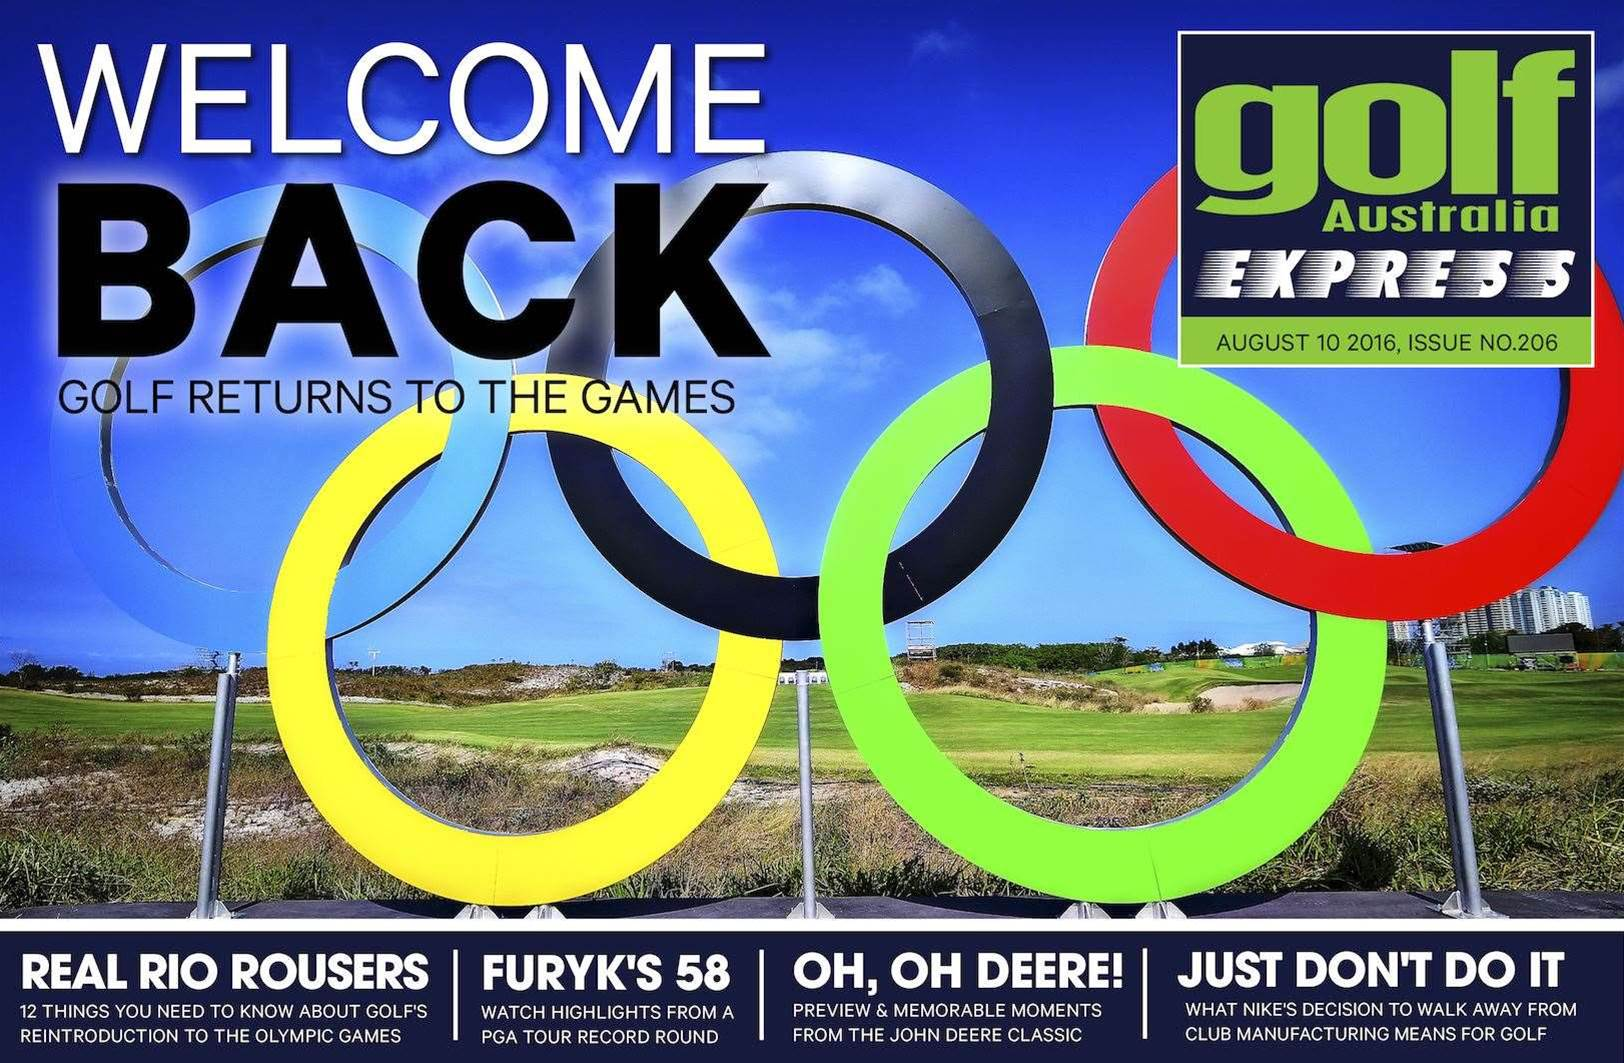 GA Express Issue 206: Golf Goes To Rio